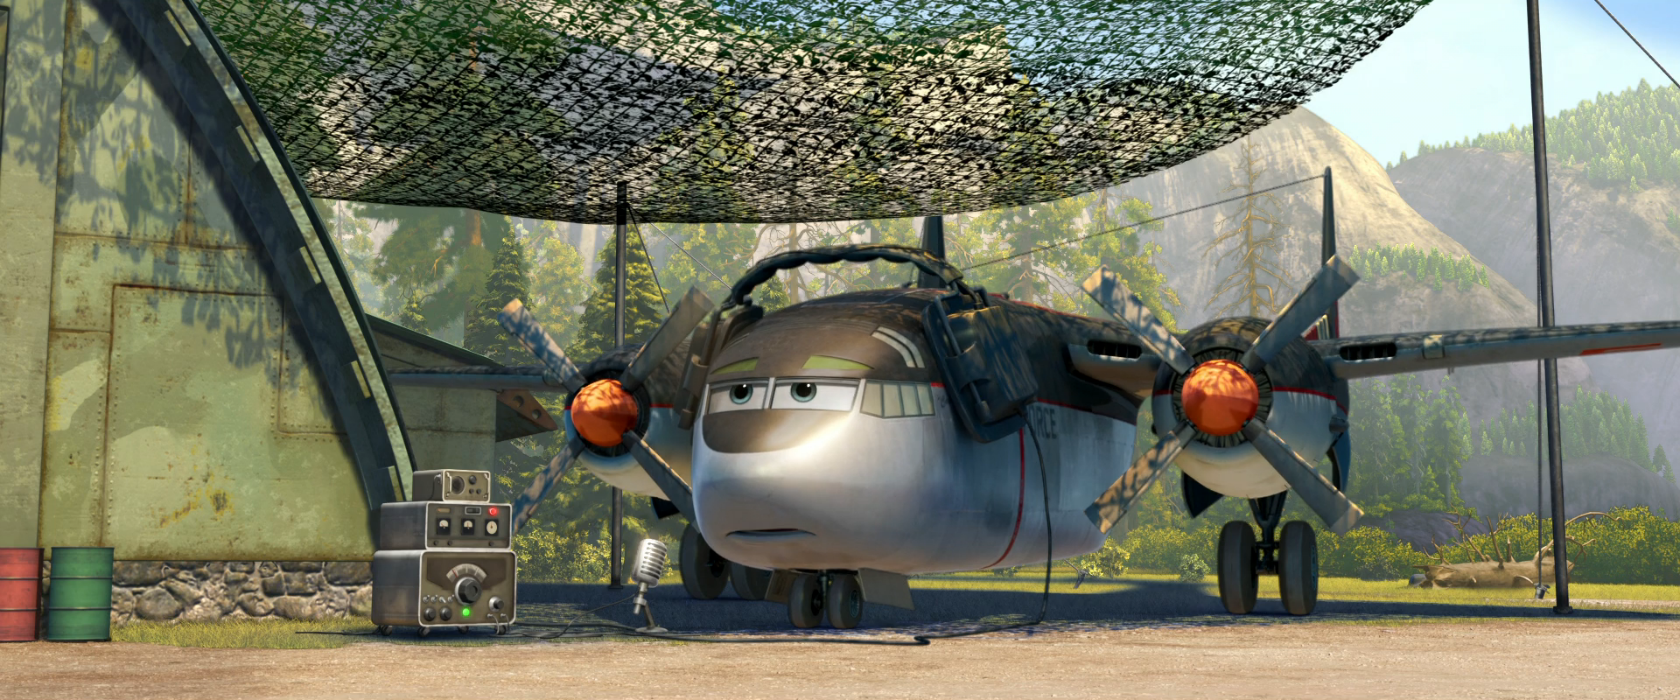 plane fire and rescue trailer with File Planes Fire  26 Rescue 4 on Disneys Planes Fire And Rescue A Review together with File Planes Fire  26 Rescue 4 likewise Inflatable boat sd430 together with Watch besides Vikings 2013.